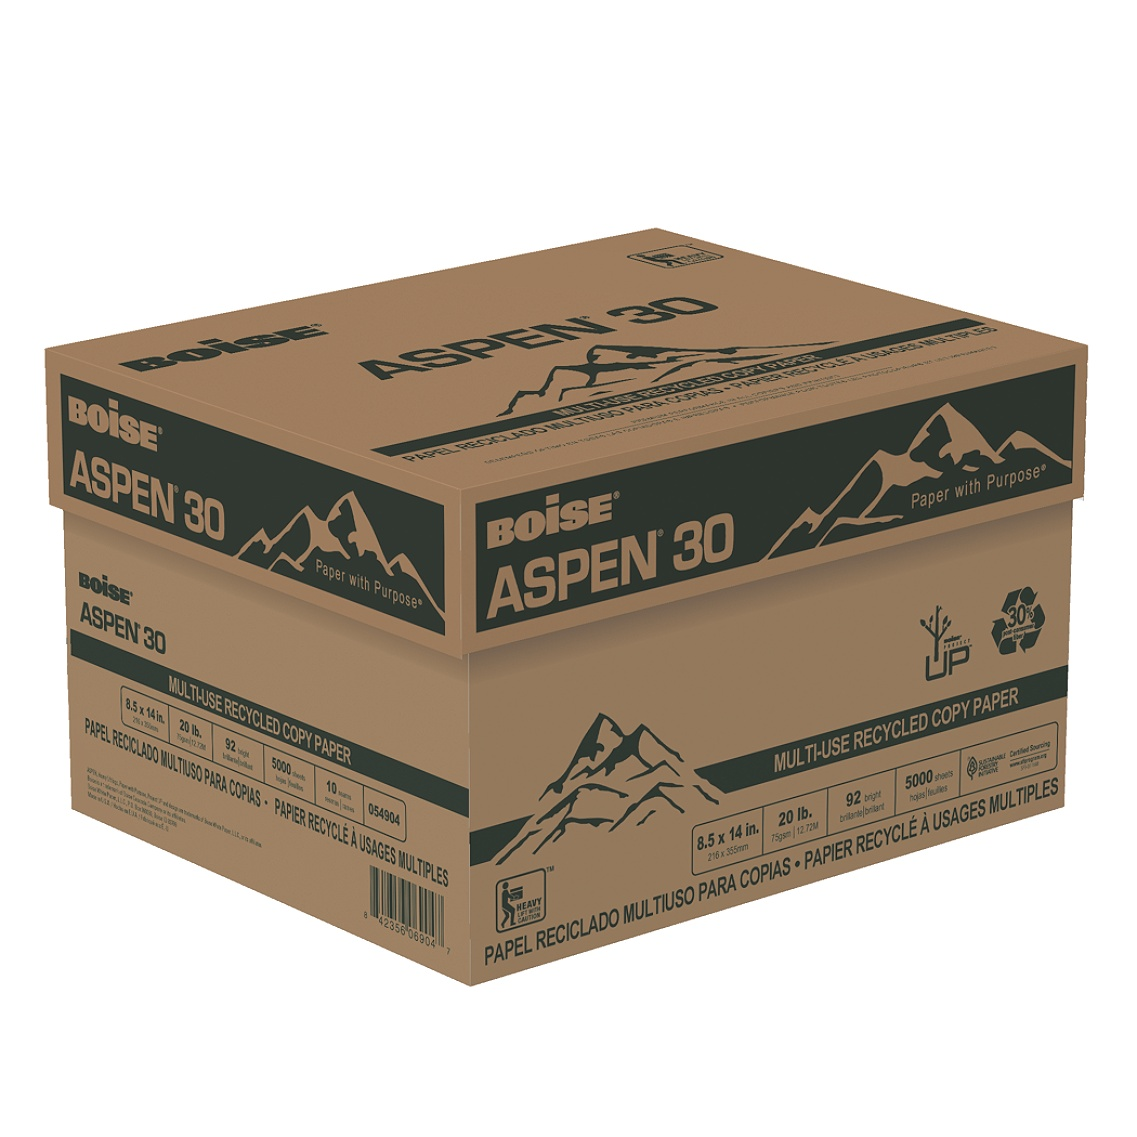 Boise 054904 ASPEN 30 Multi-Use Recycled Paper